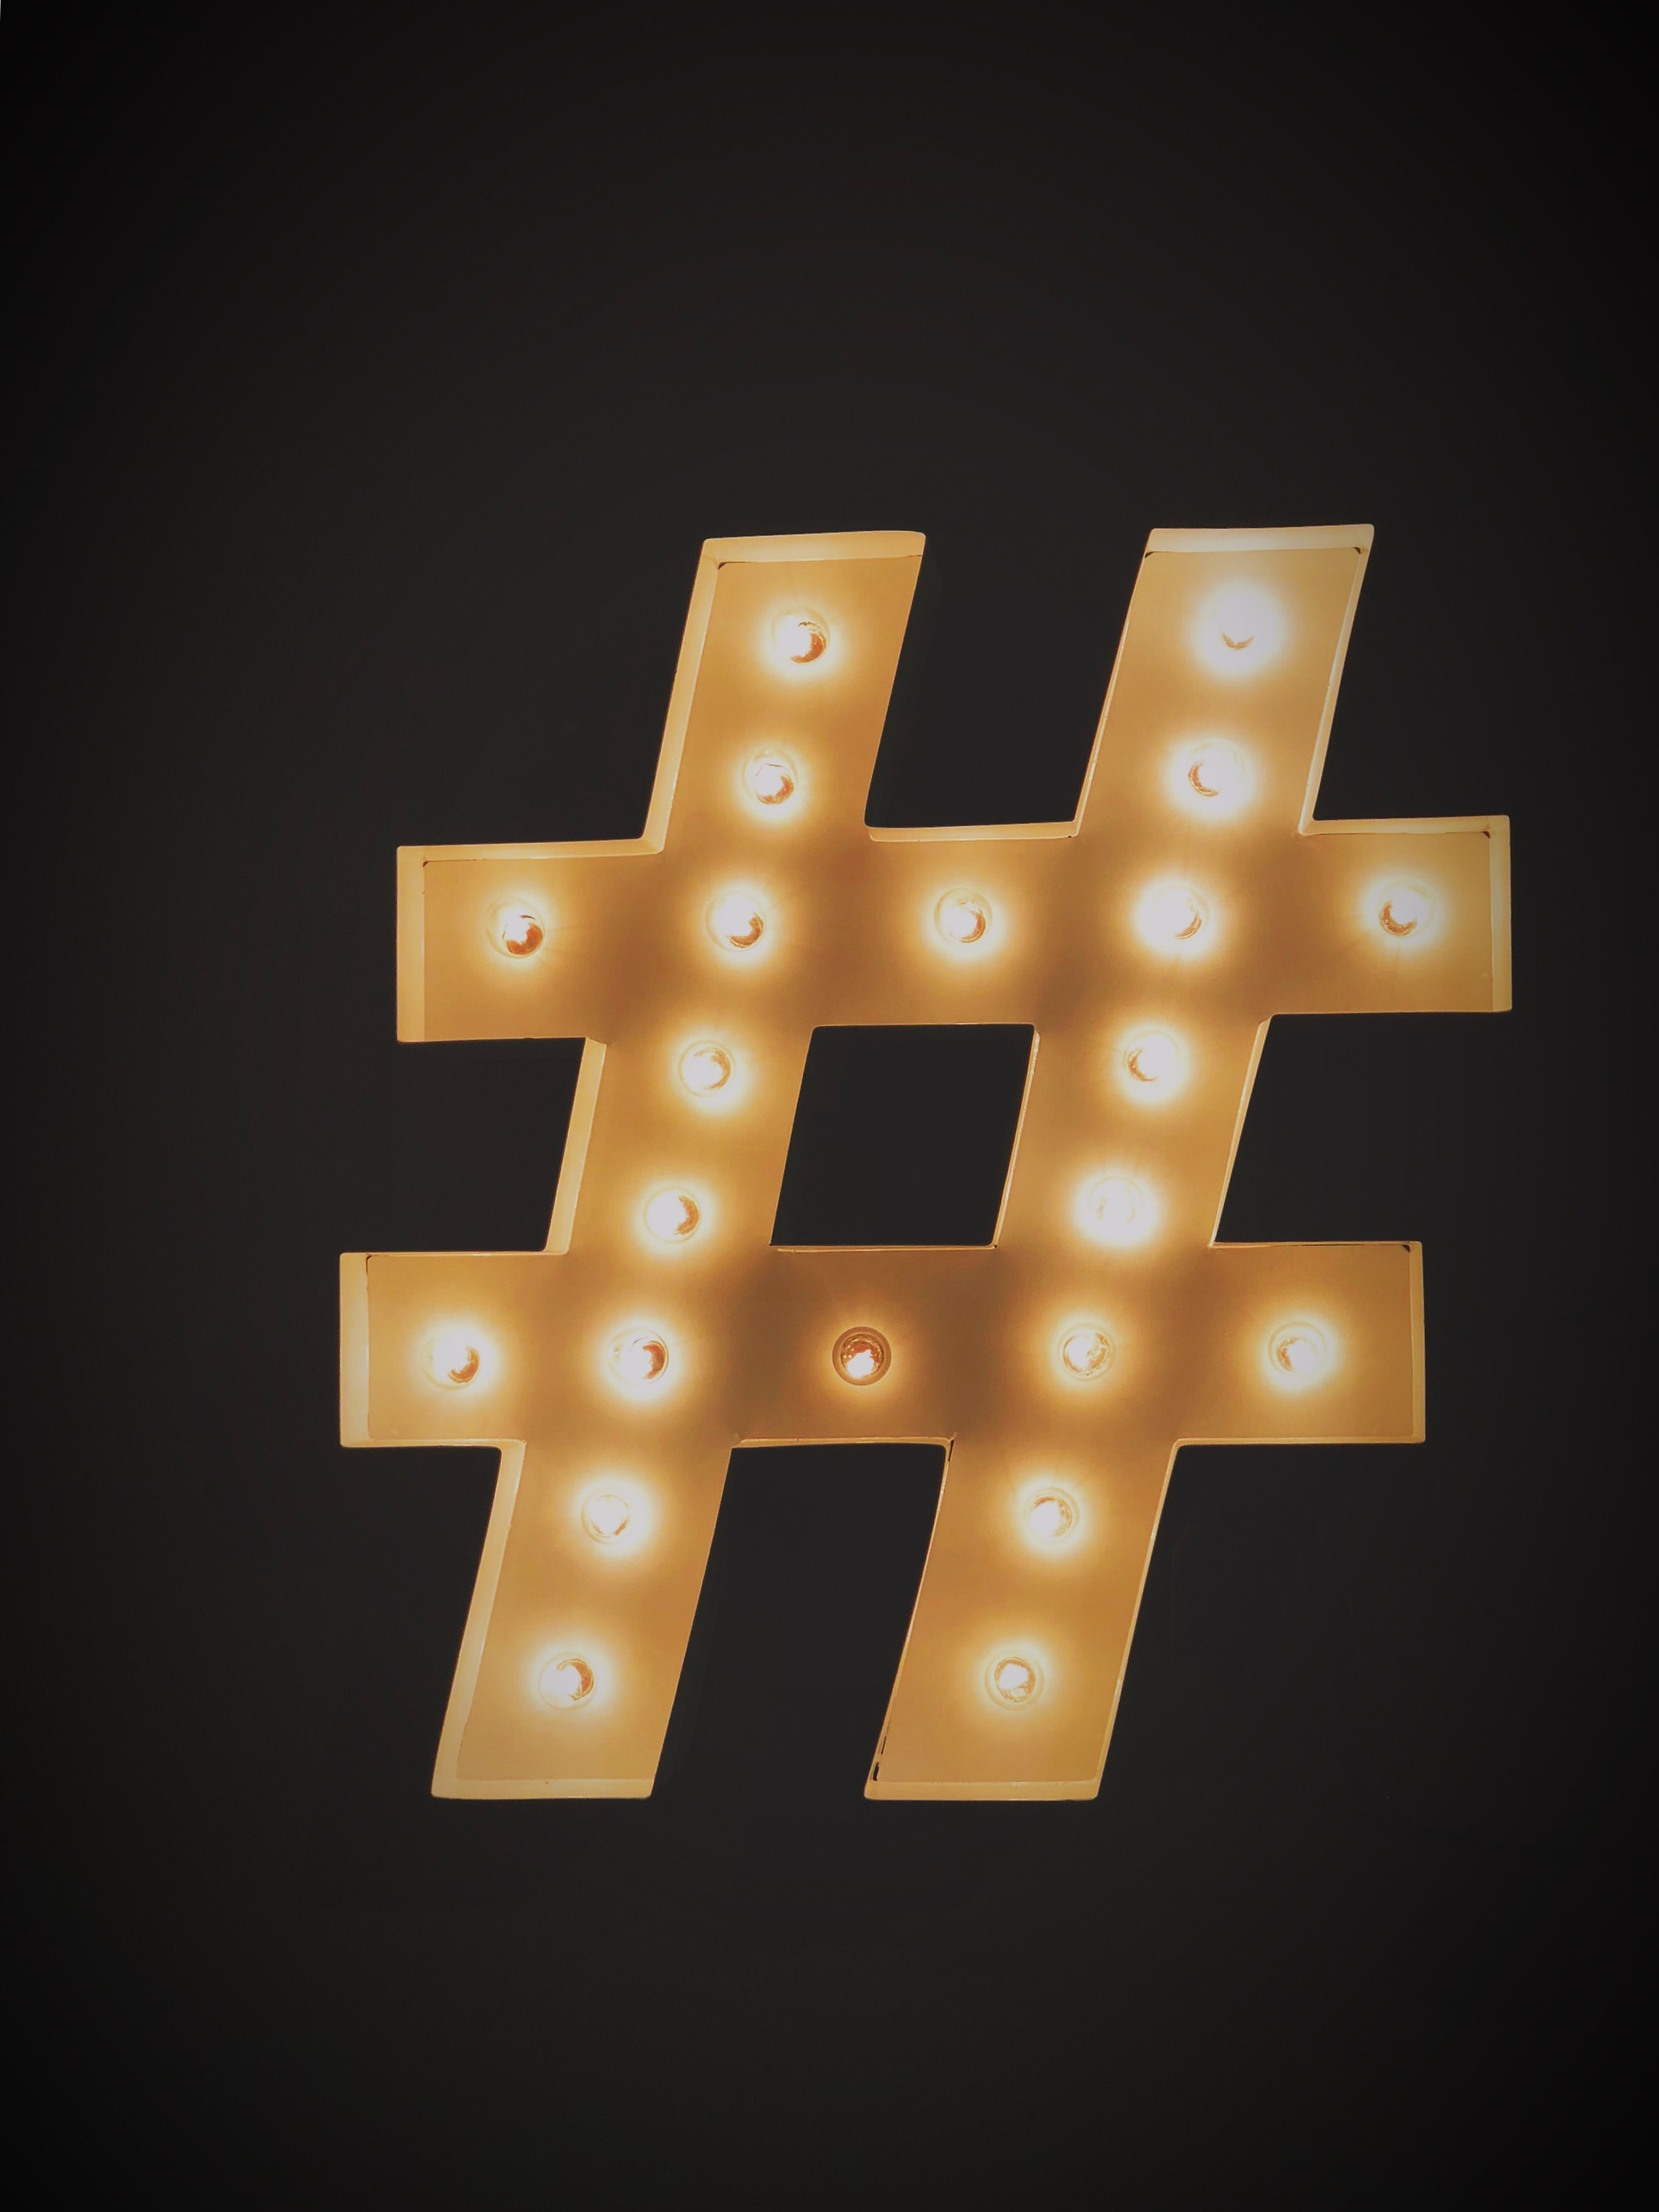 Best Hashtags For Your Business